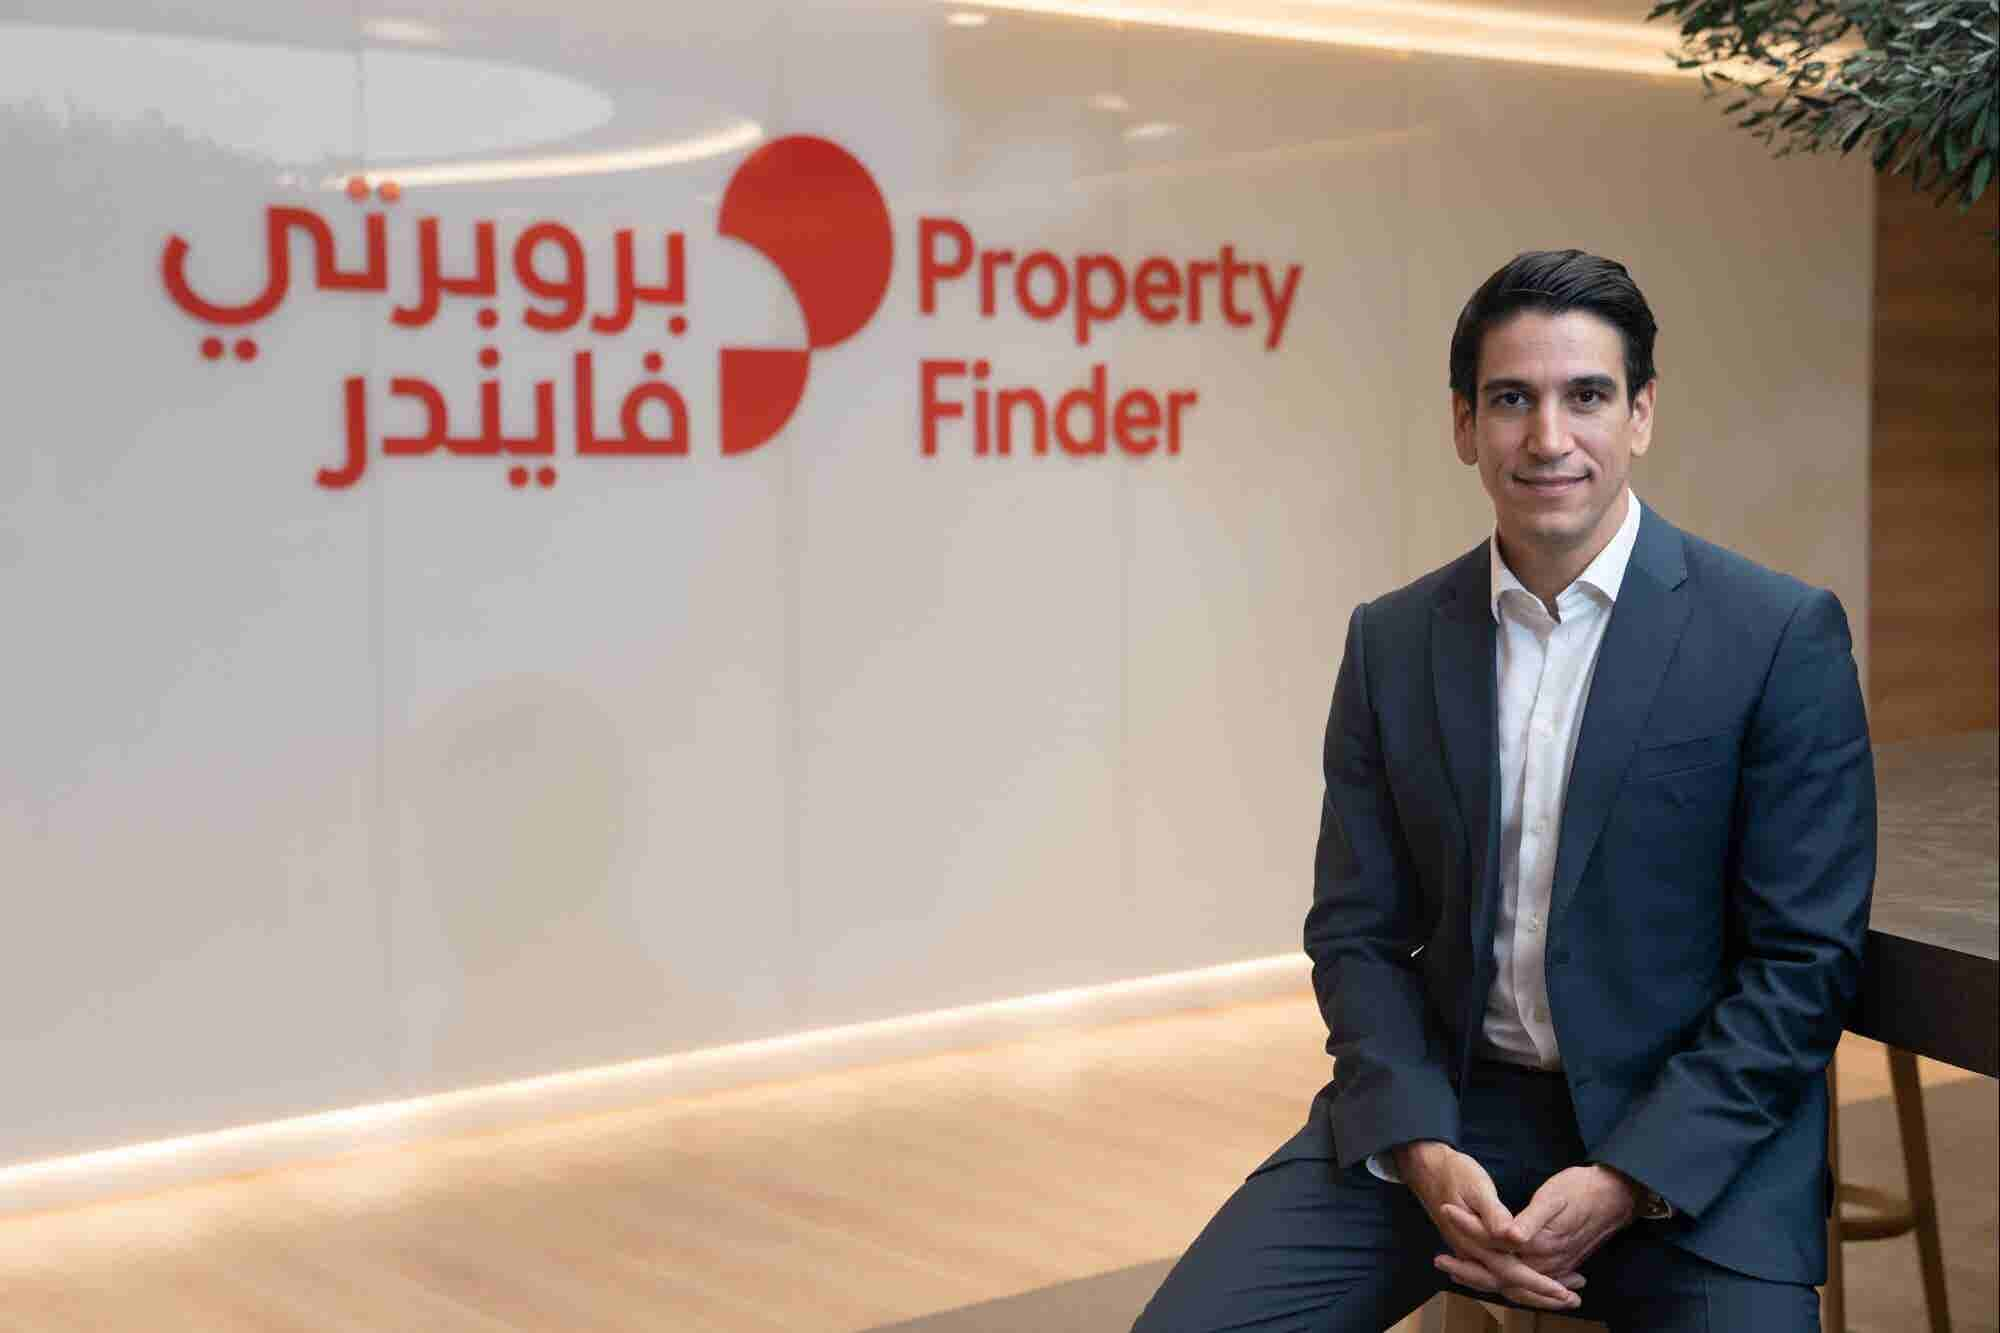 We Got Funded: UAE-Headquartered Property Finder Raises US$120 Million